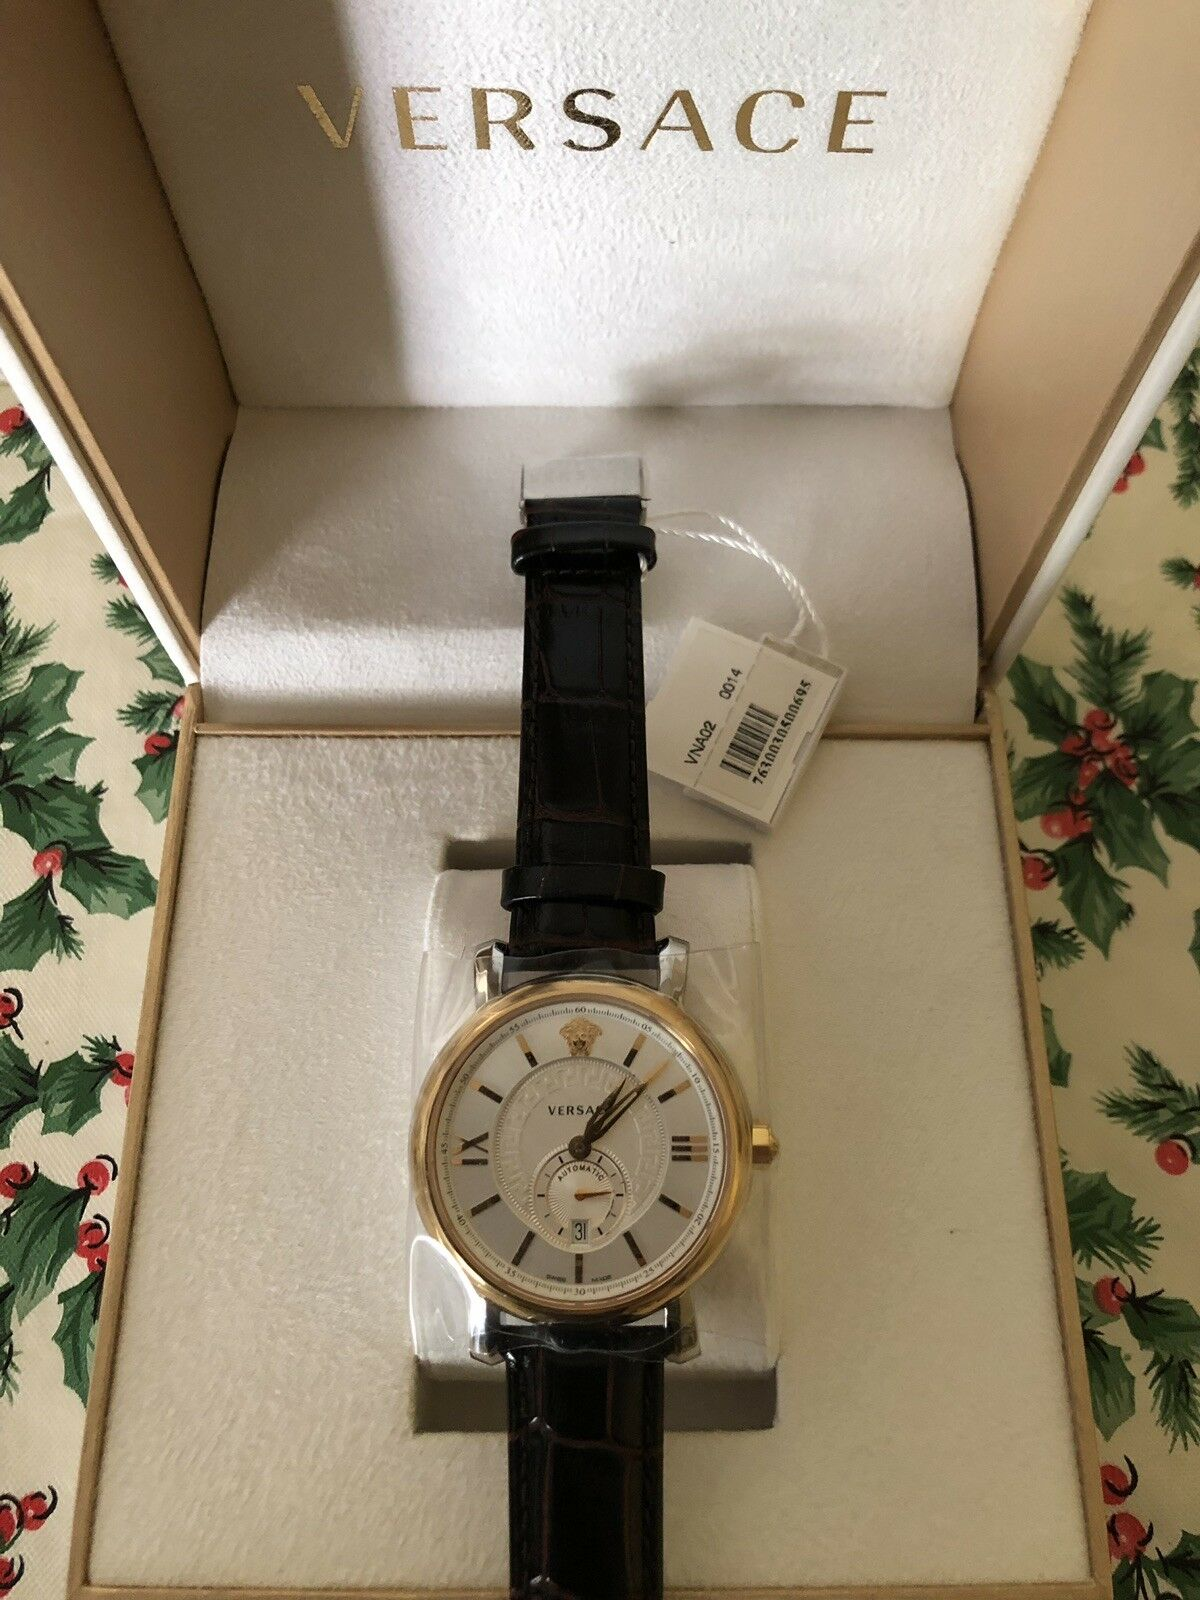 58126fb60 Versace Men's VNA020014 Urban Gent Gold Ion-plated Automatic Watch With Black  Leather Band for sale online | eBay